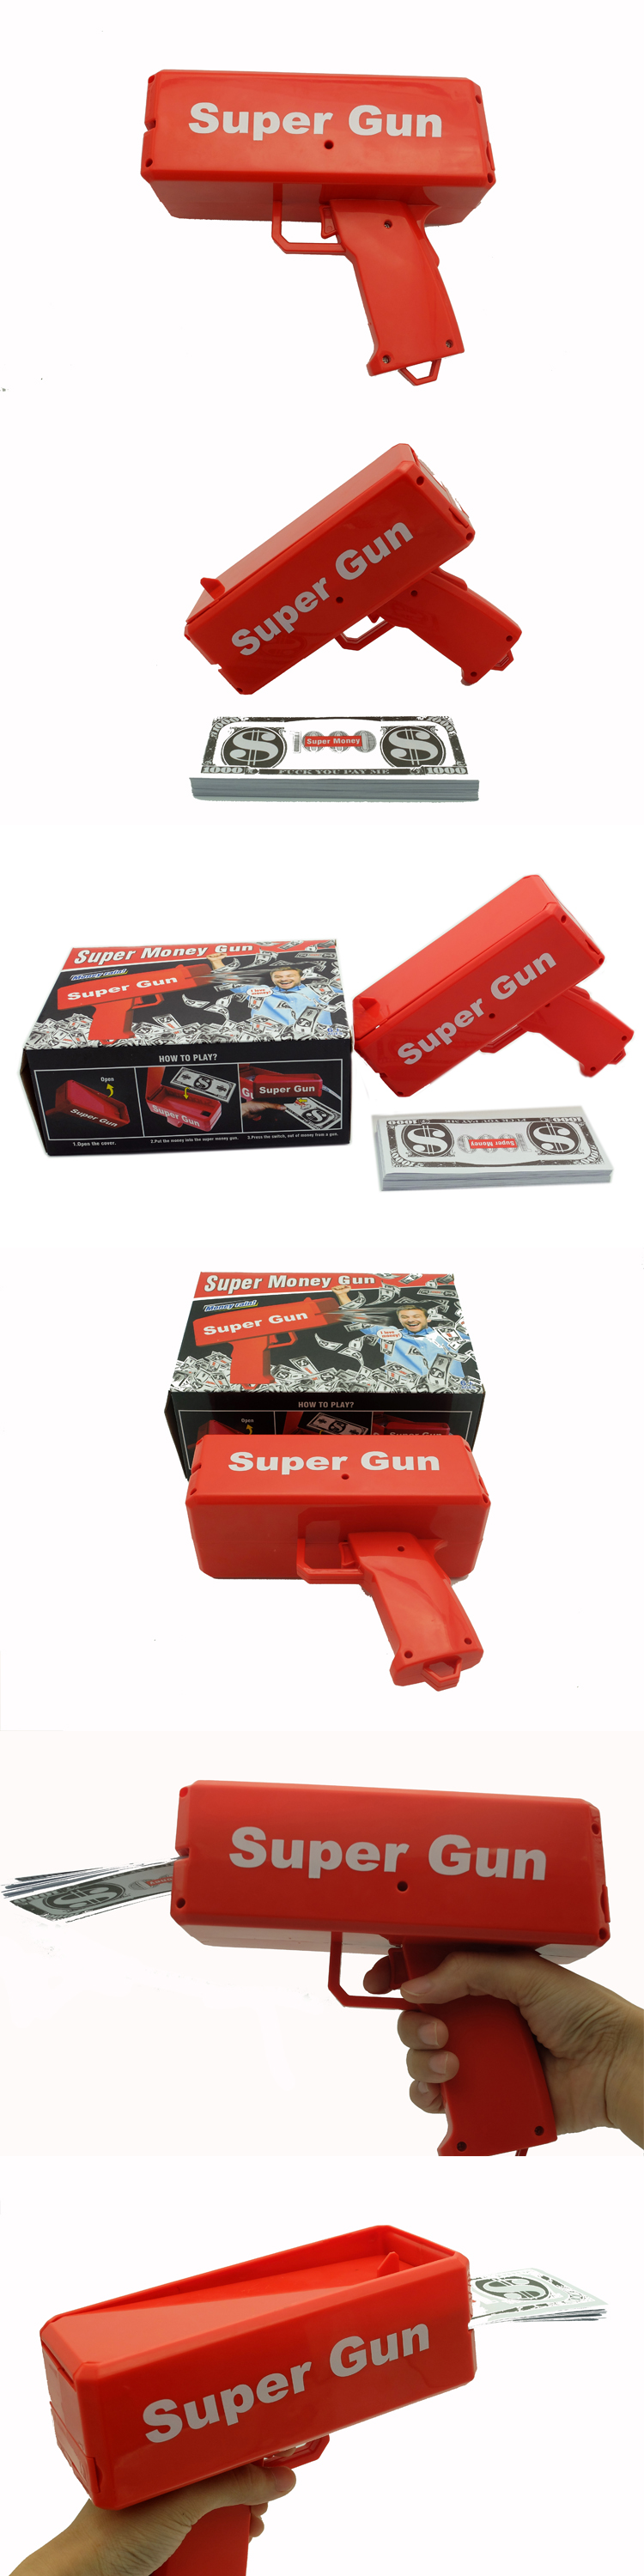 US Dollar Money Spray Gun Toy Celebration Money Gun Included 50 Props Money Cash